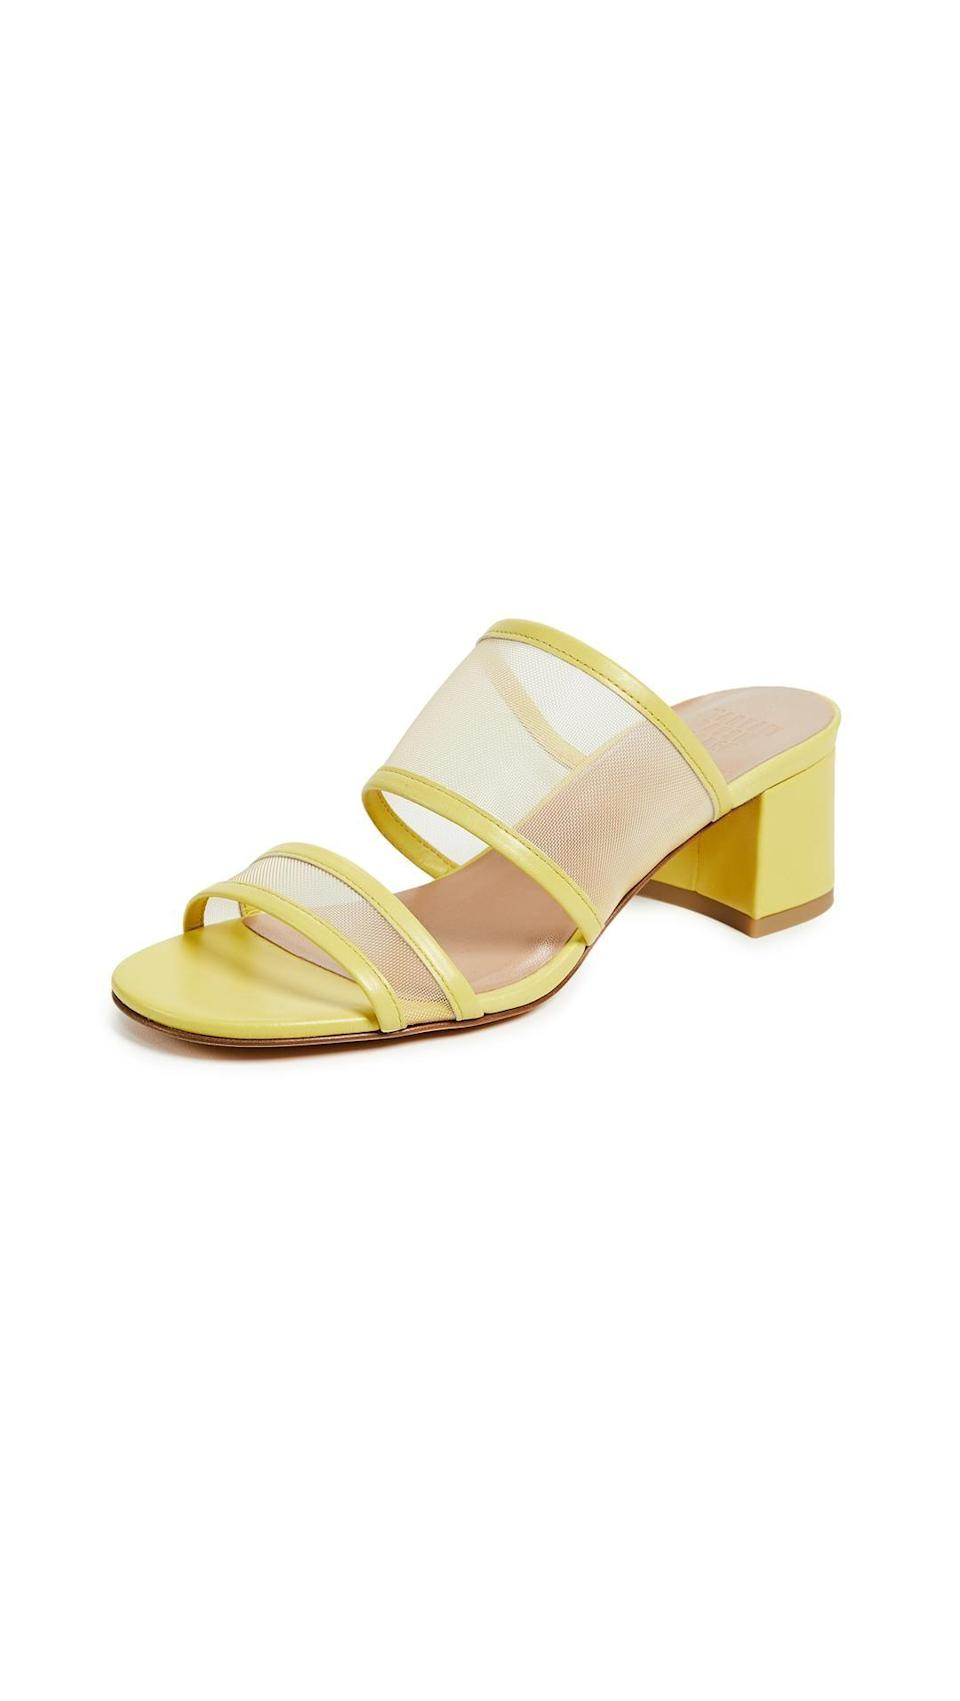 Available in sizes 36 to 39.